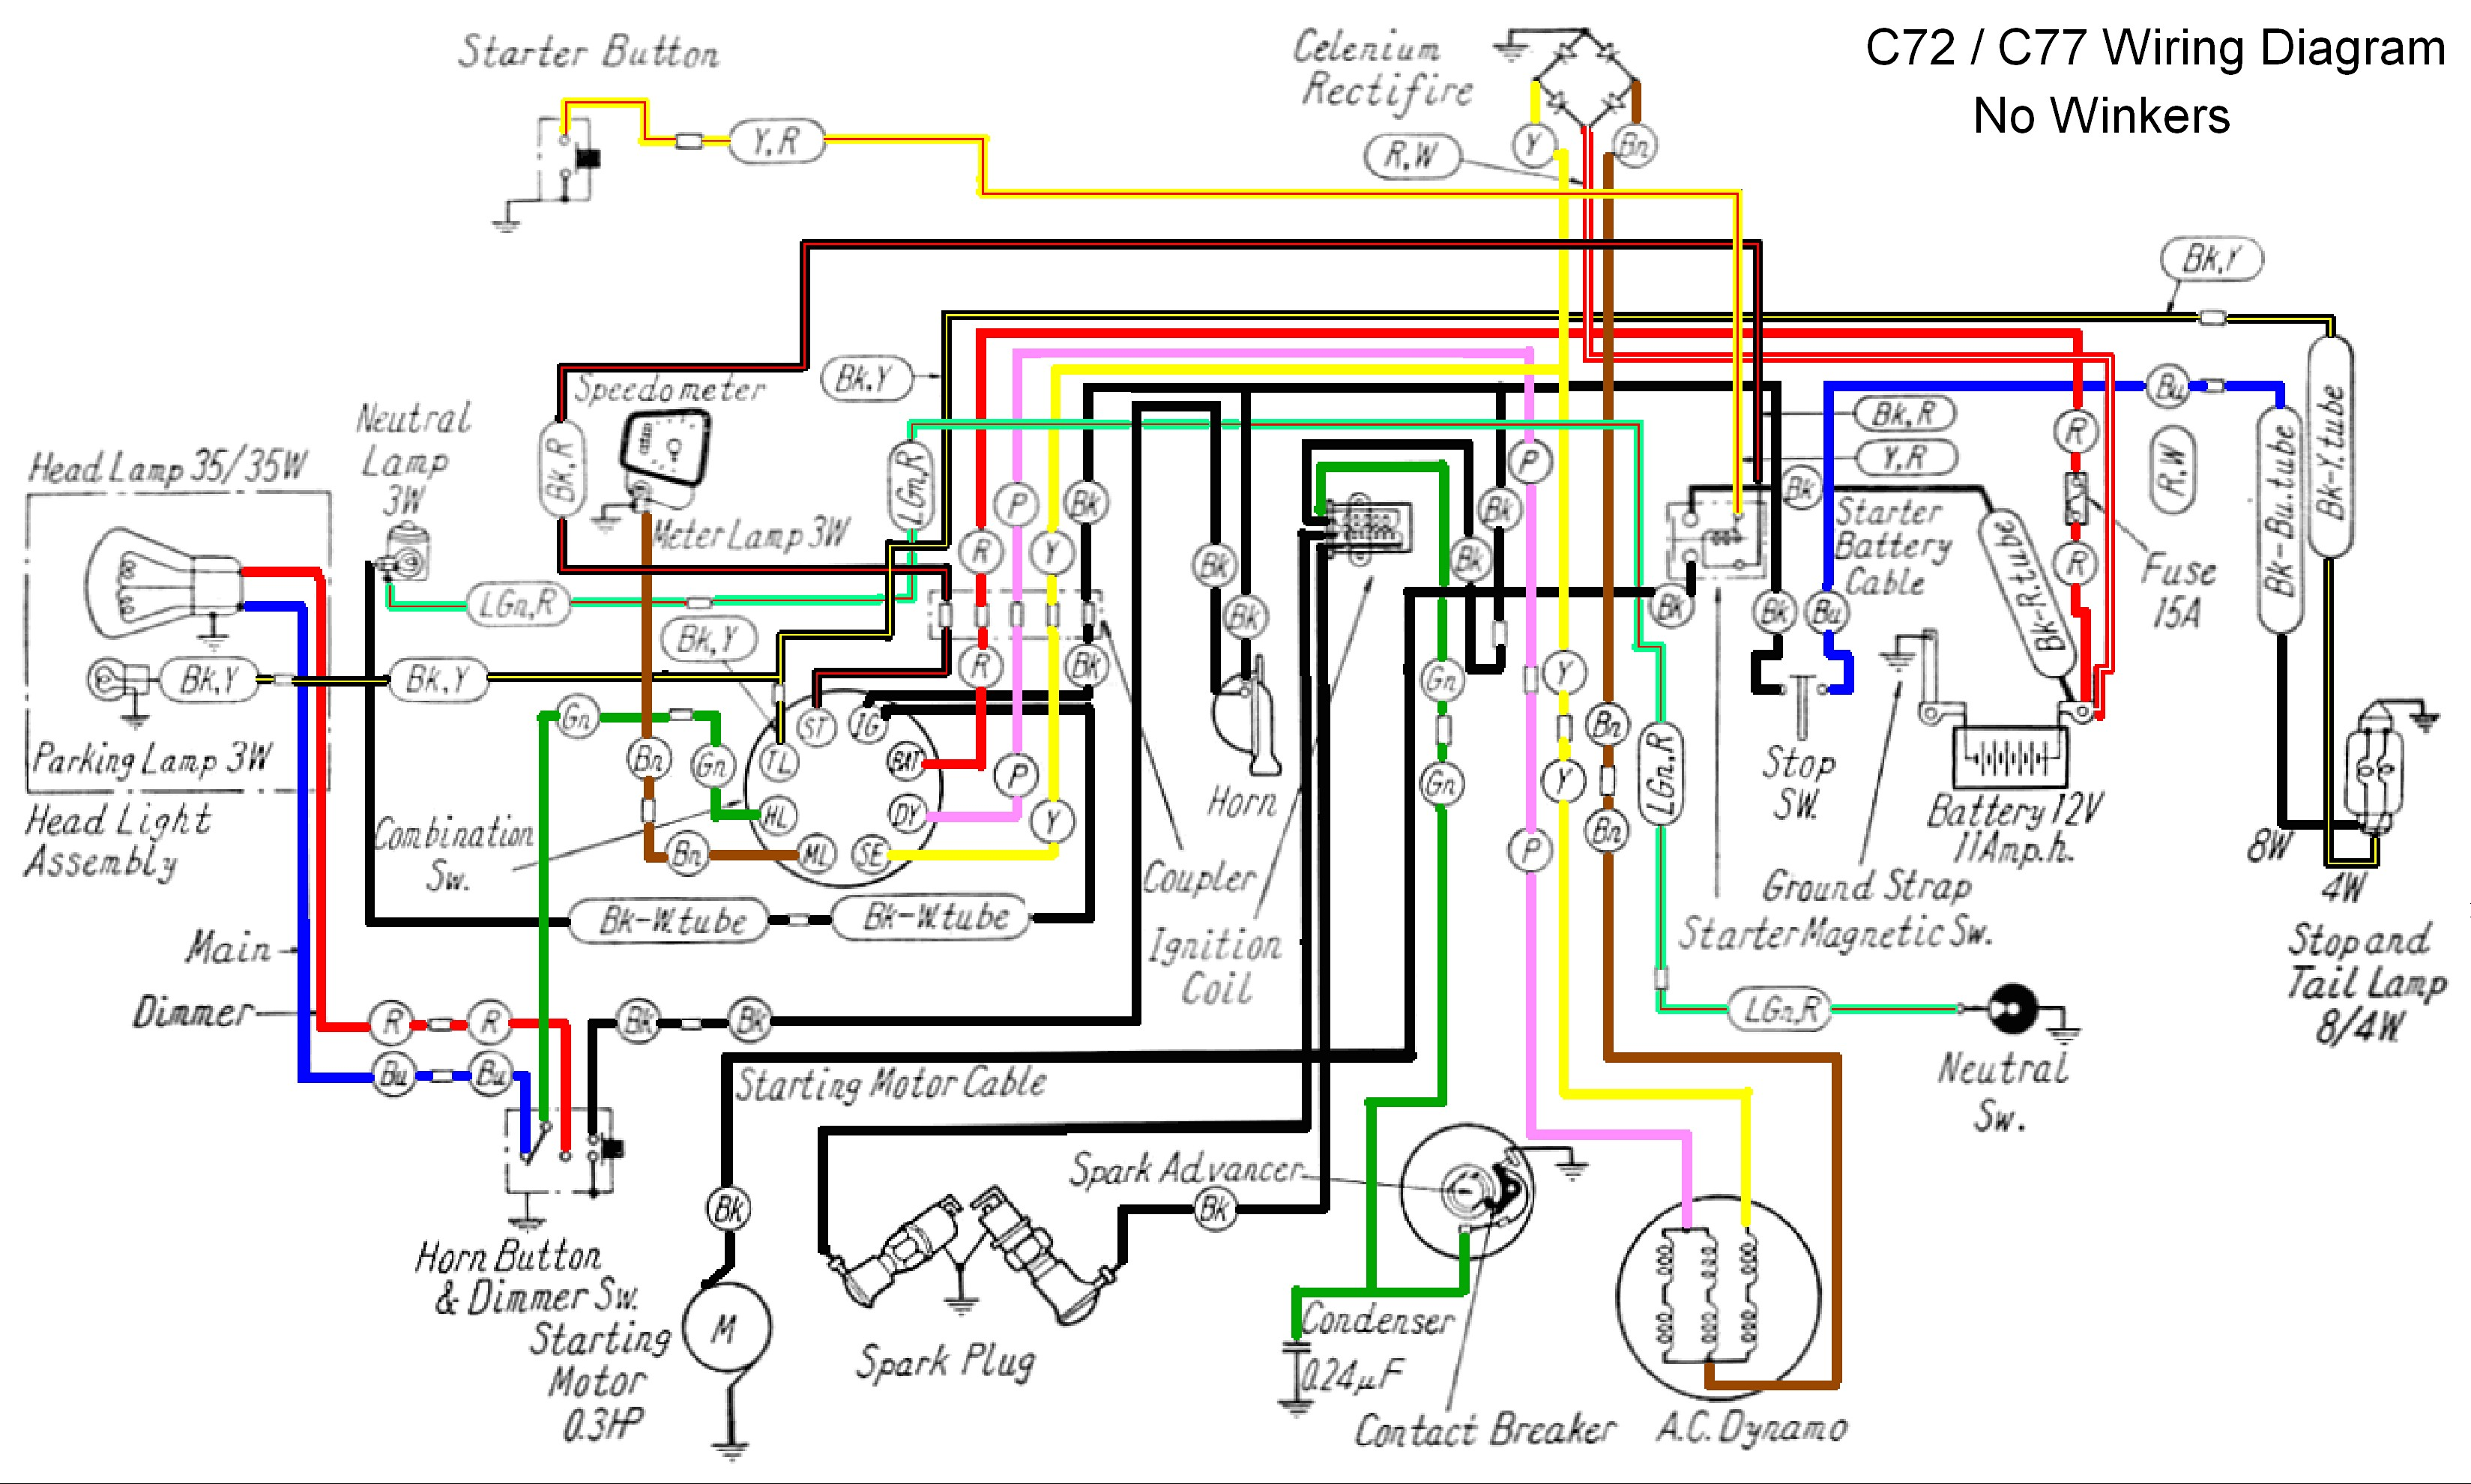 wiring diagram for 1974 honda cb550 wiring diagram operations